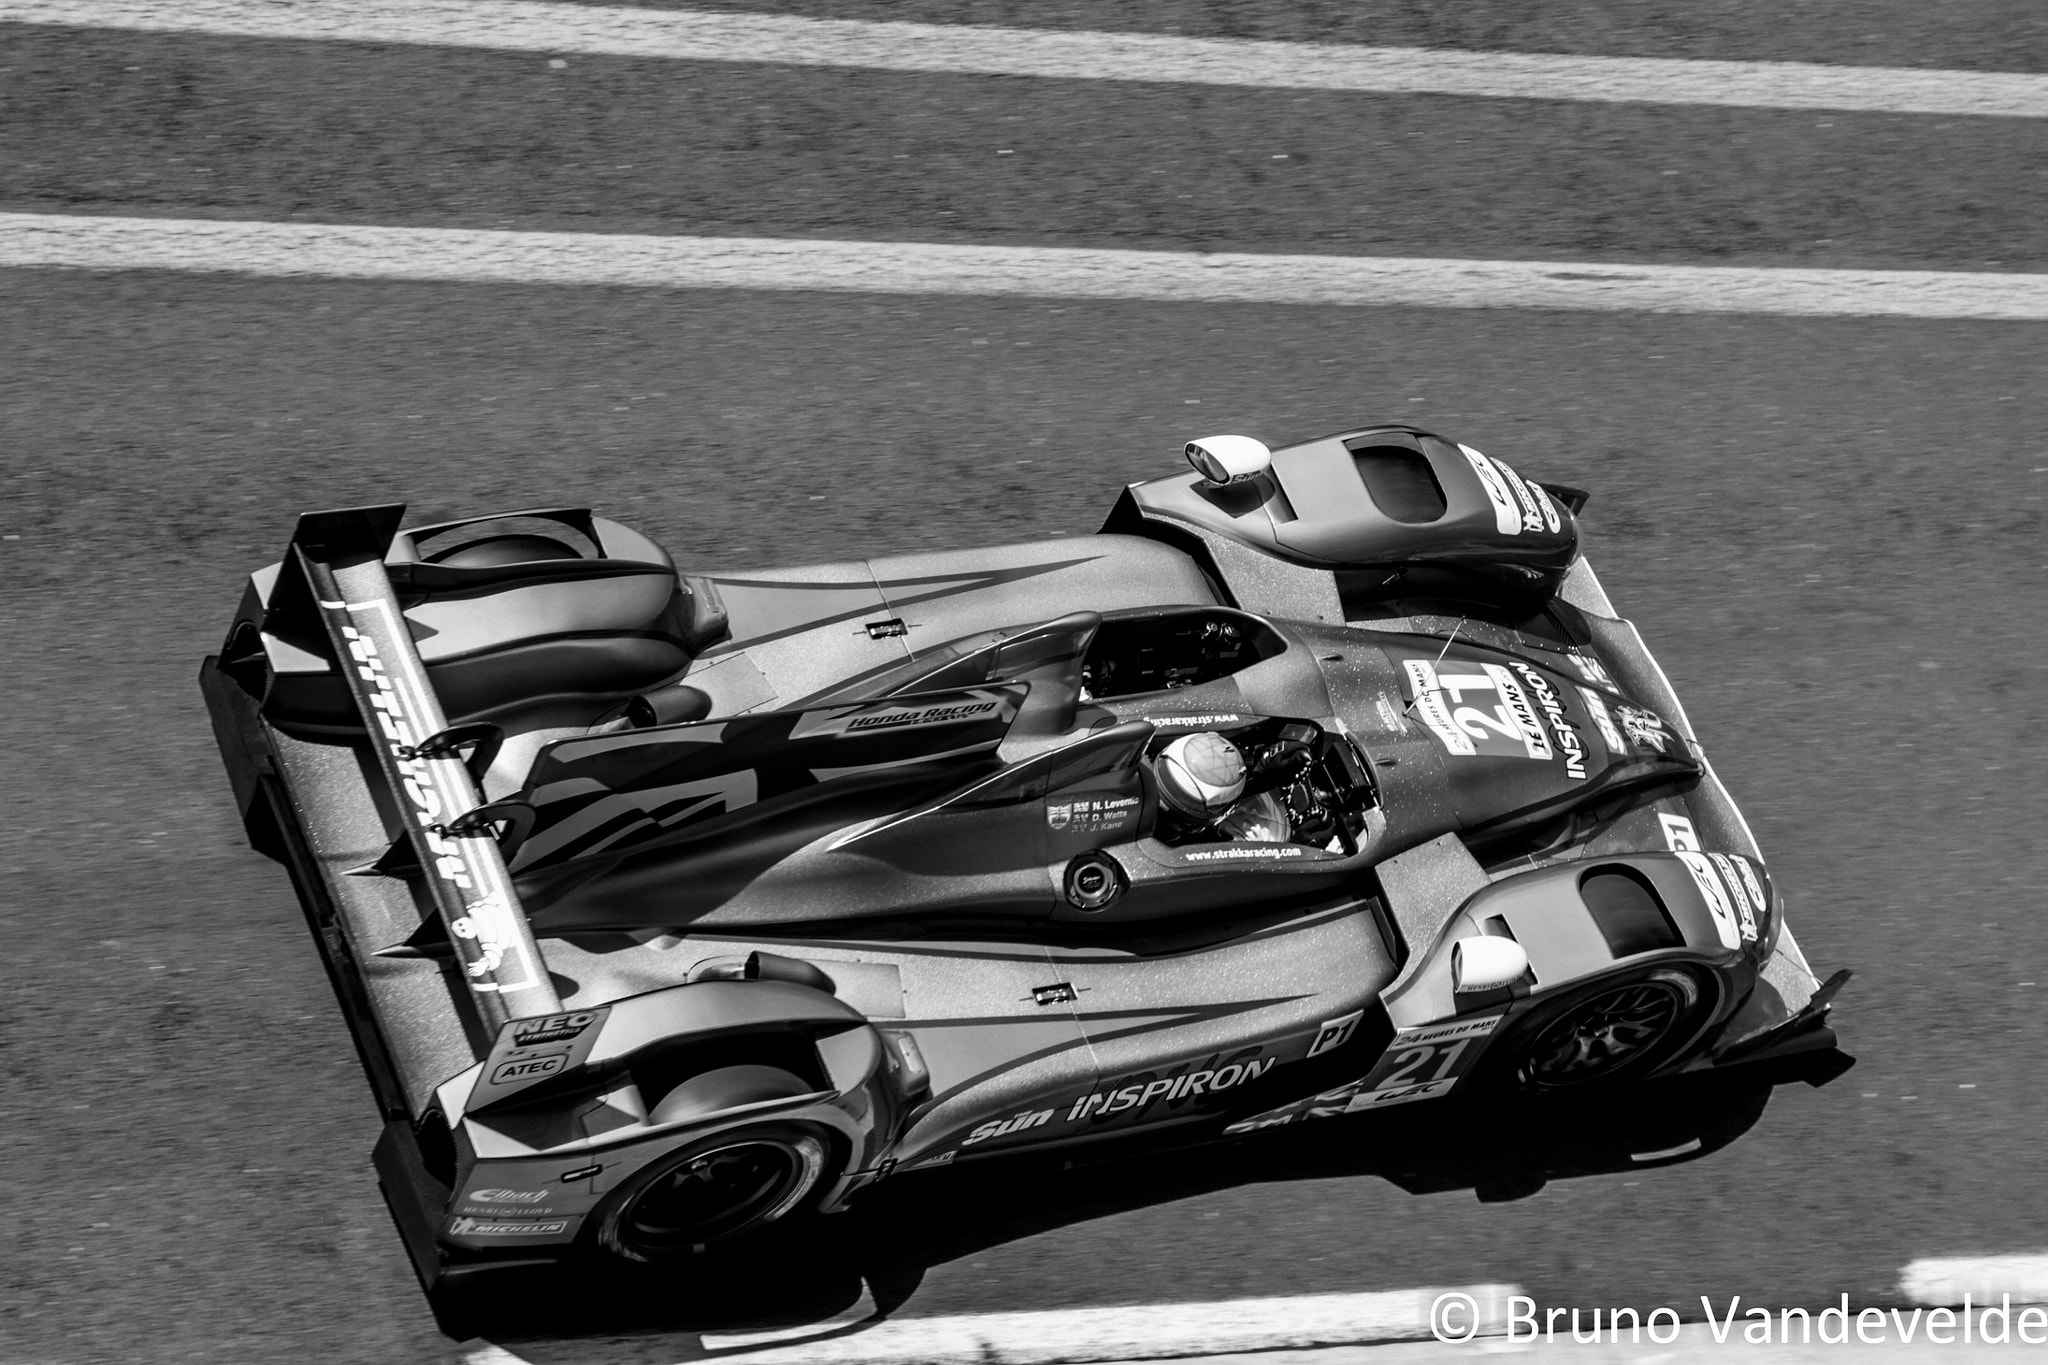 Photograph Strakka Racing - 24h du Mans 2012 by Bruno Vandevelde on 500px